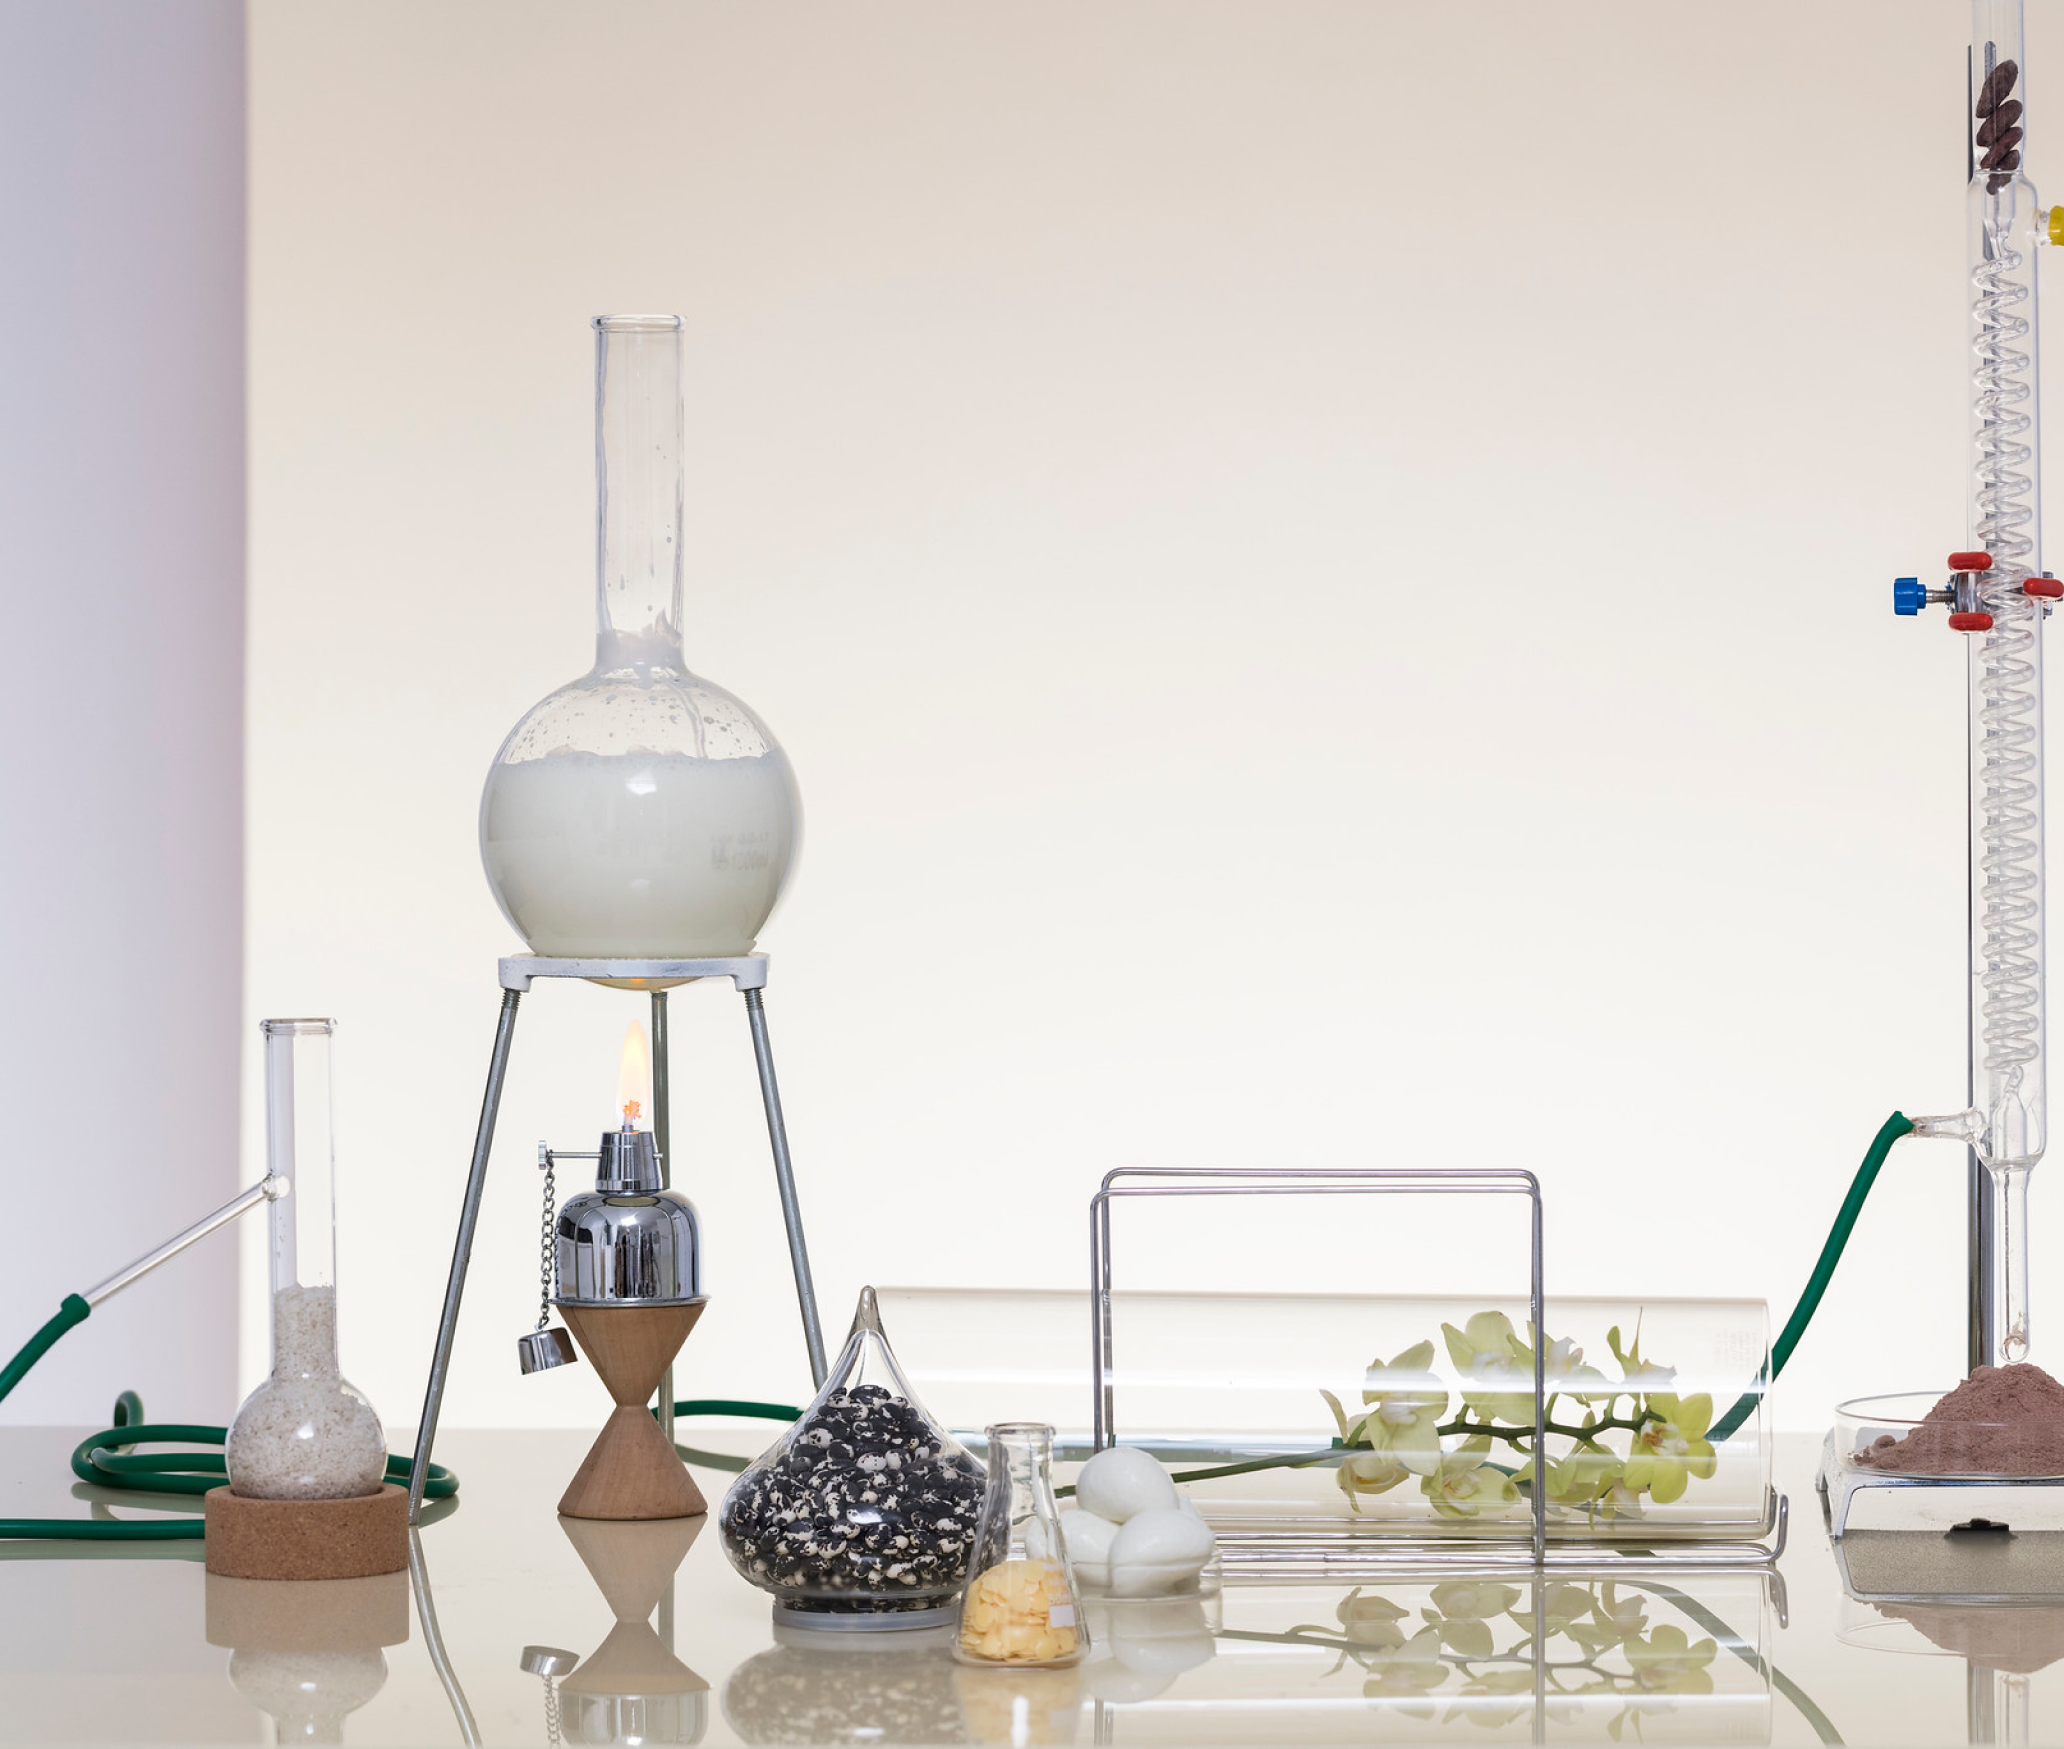 Photo of chemistry equipment and ingredients on a reflective surface